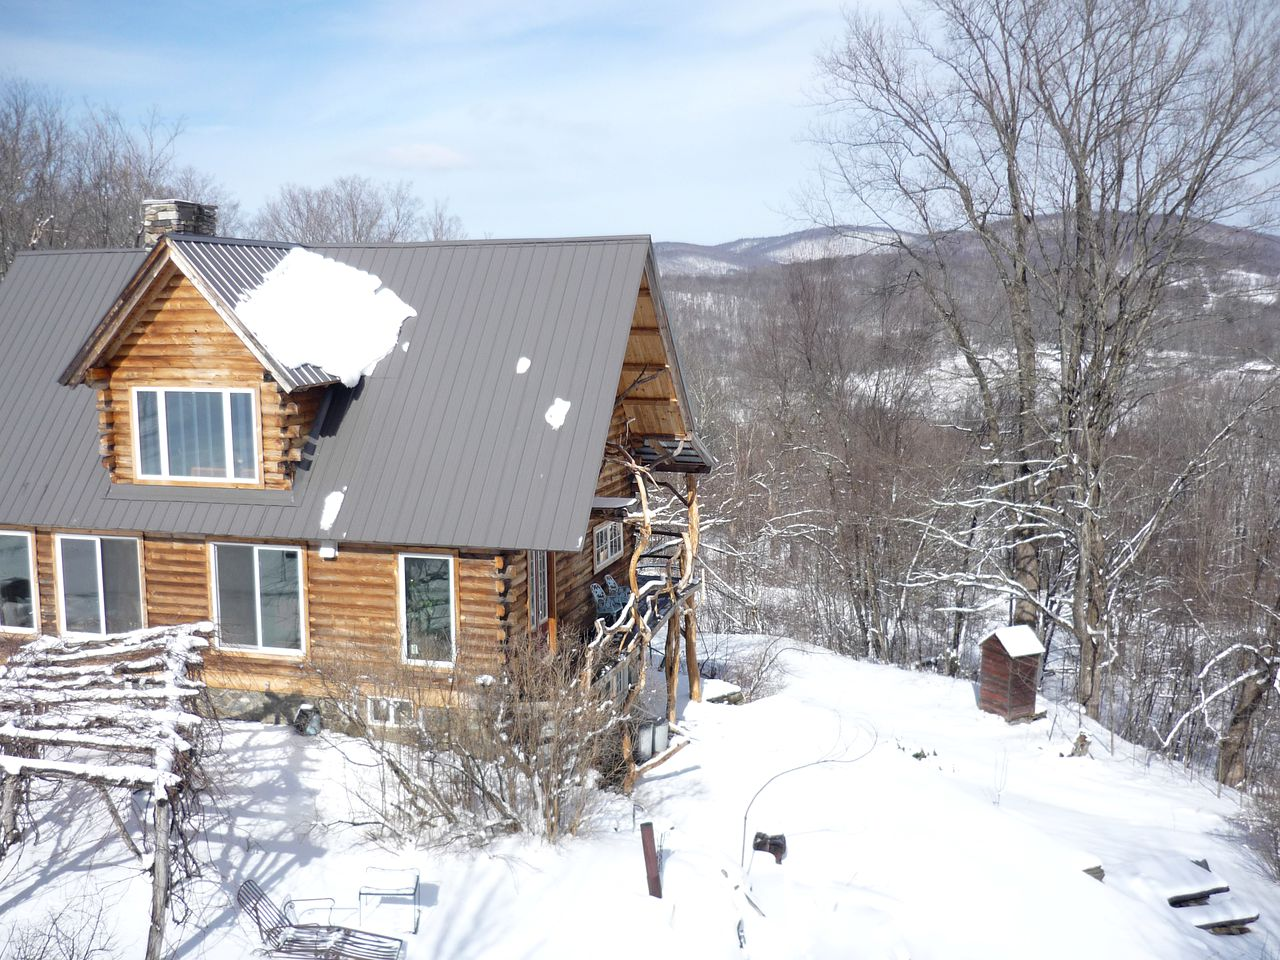 Cabins (Rupert, Vermont, United States)